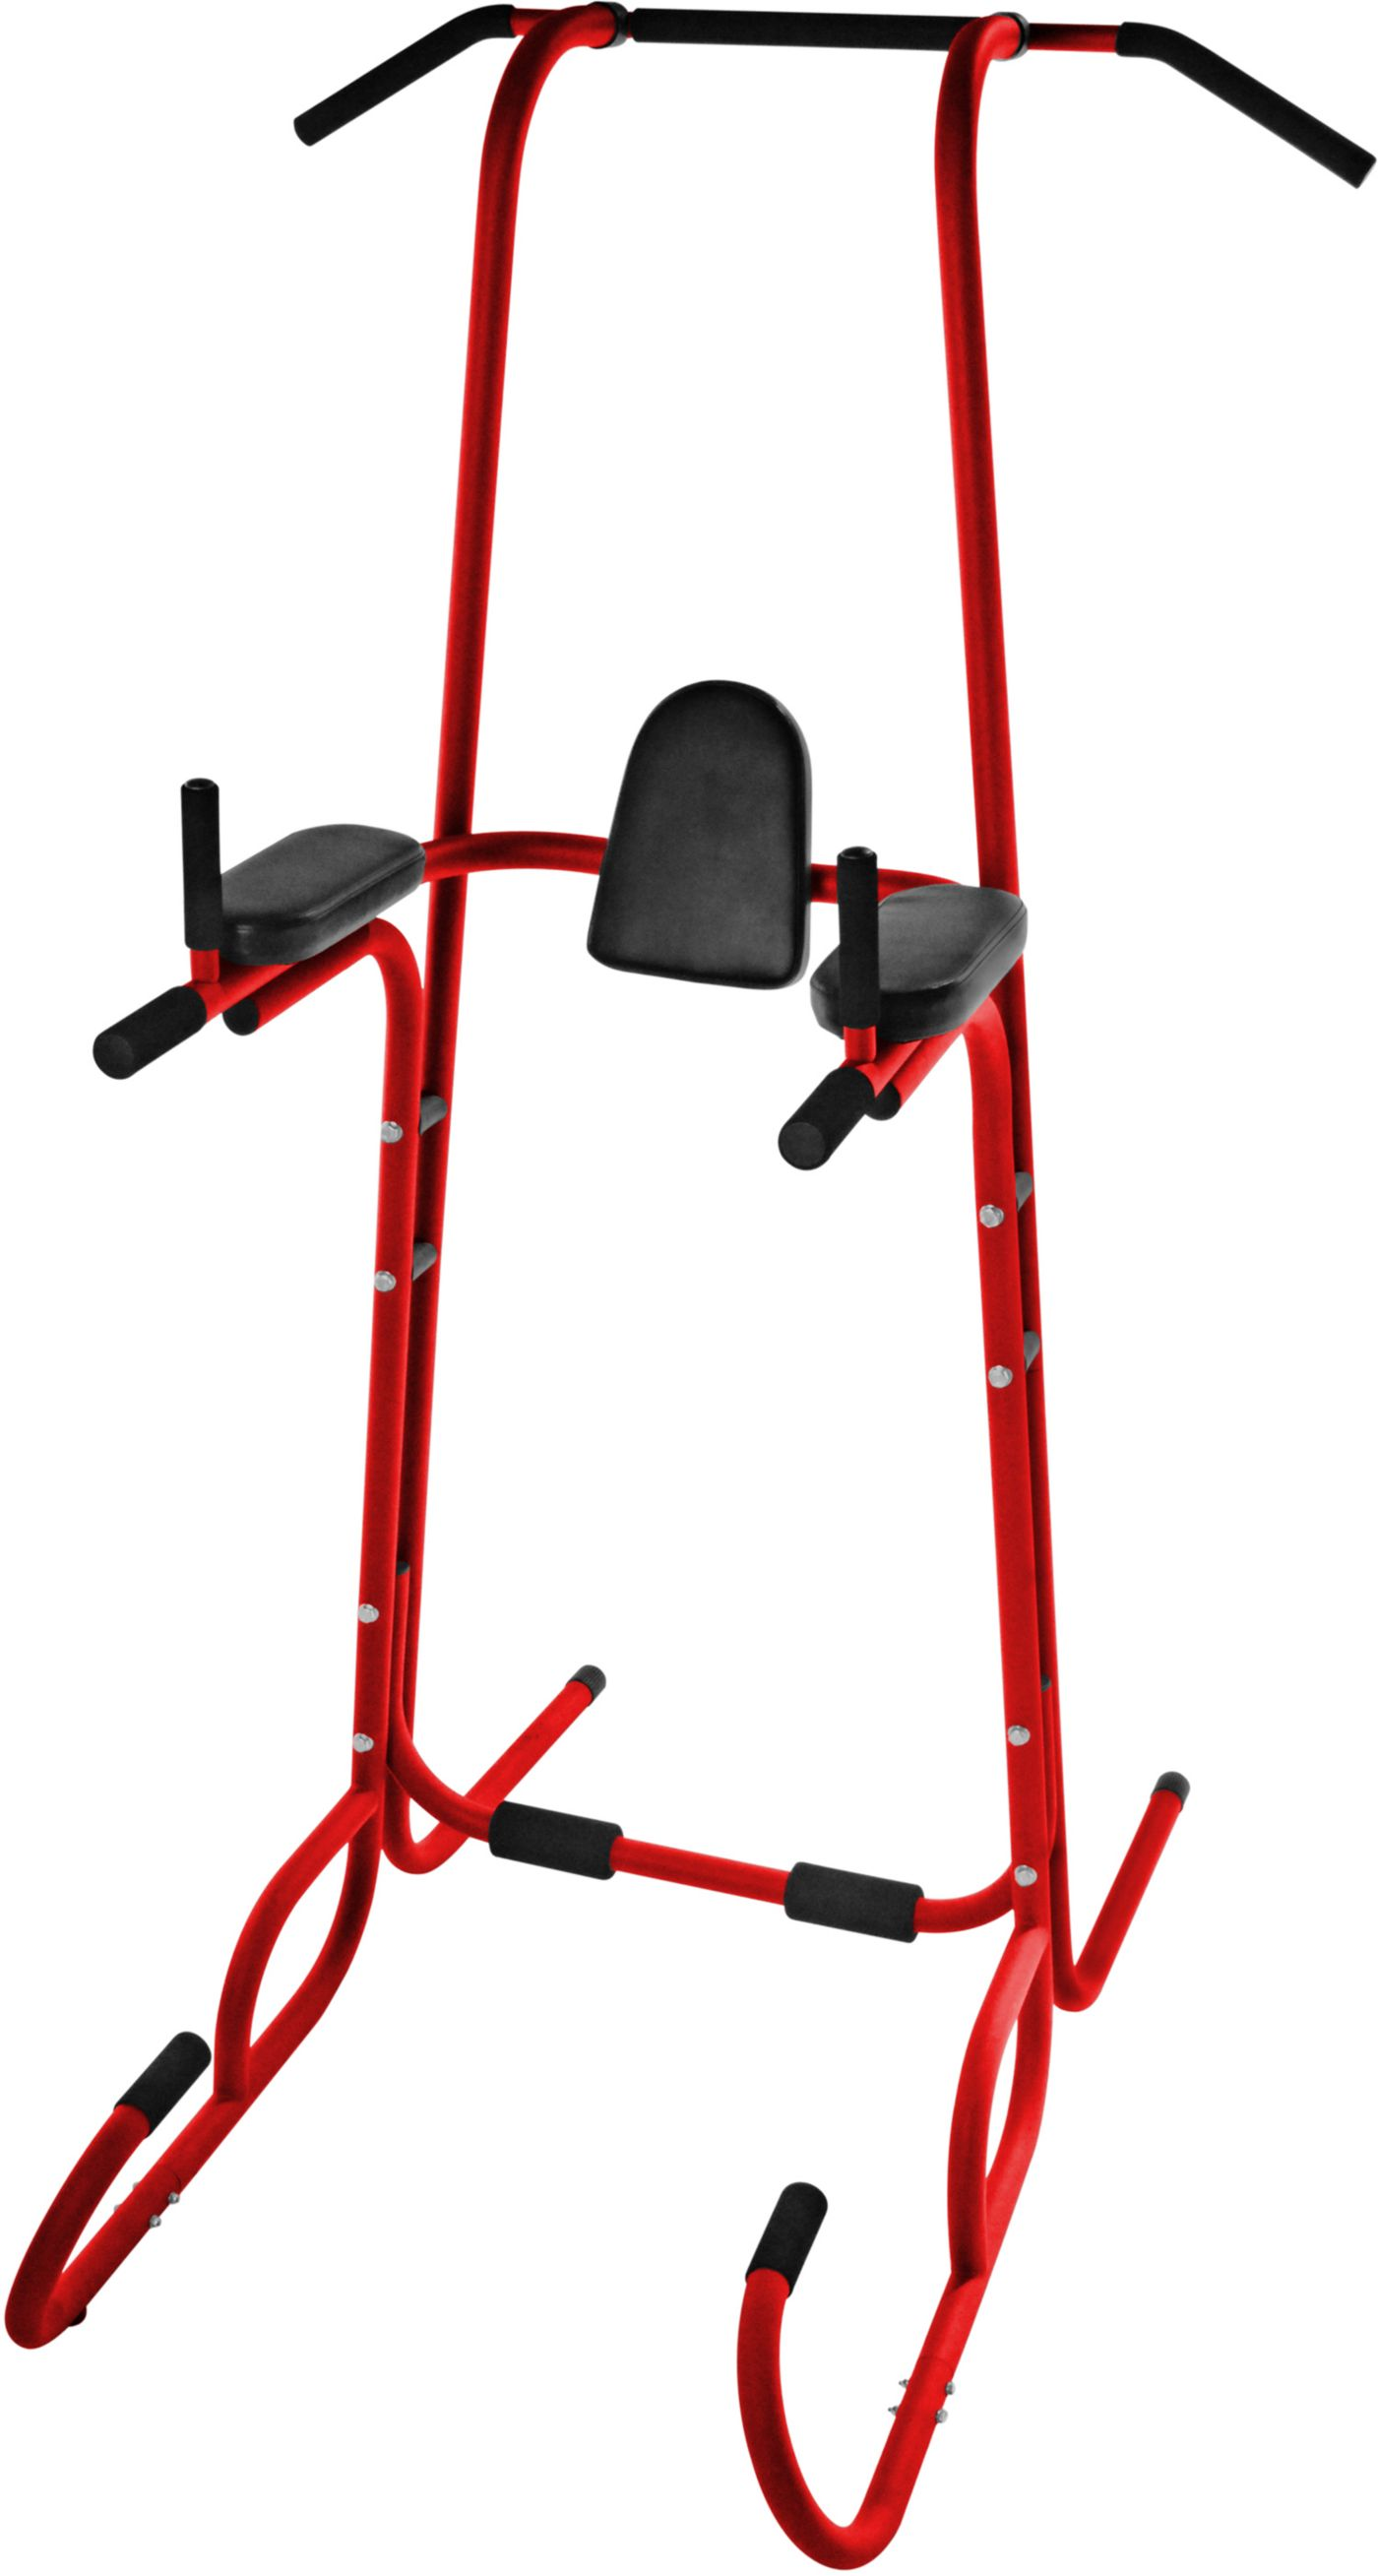 Stamina X Power Tower with VKR